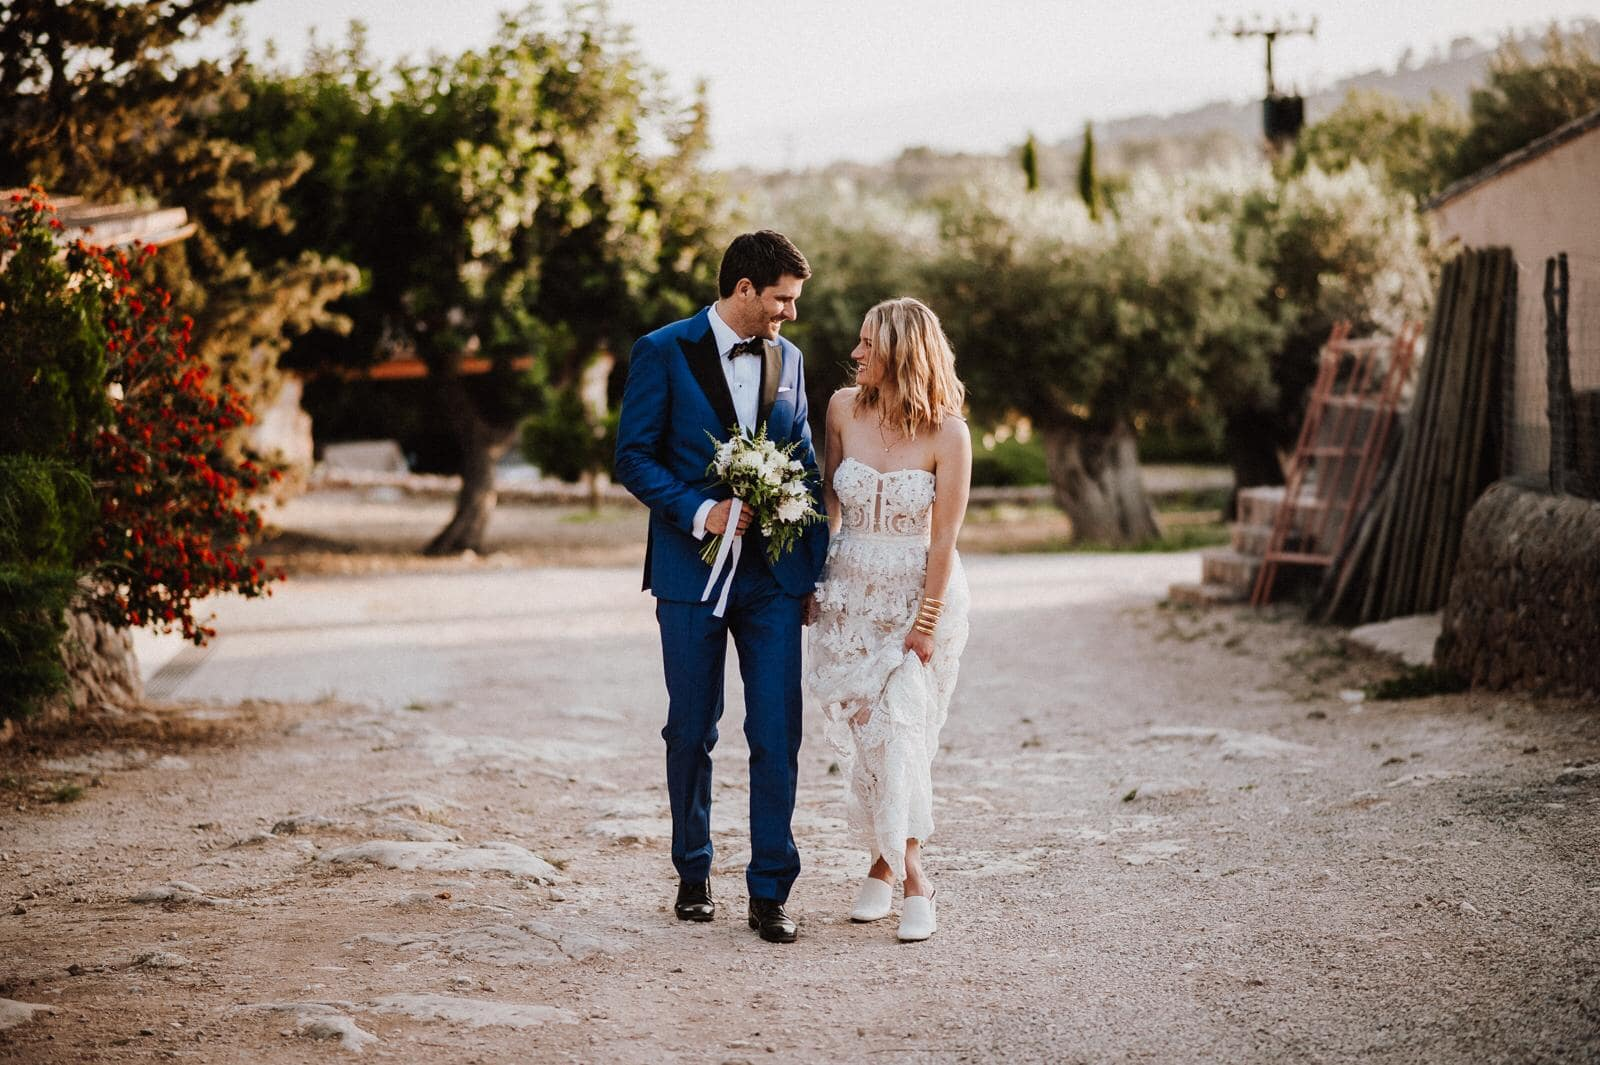 Wedding in the countryside of Majorca